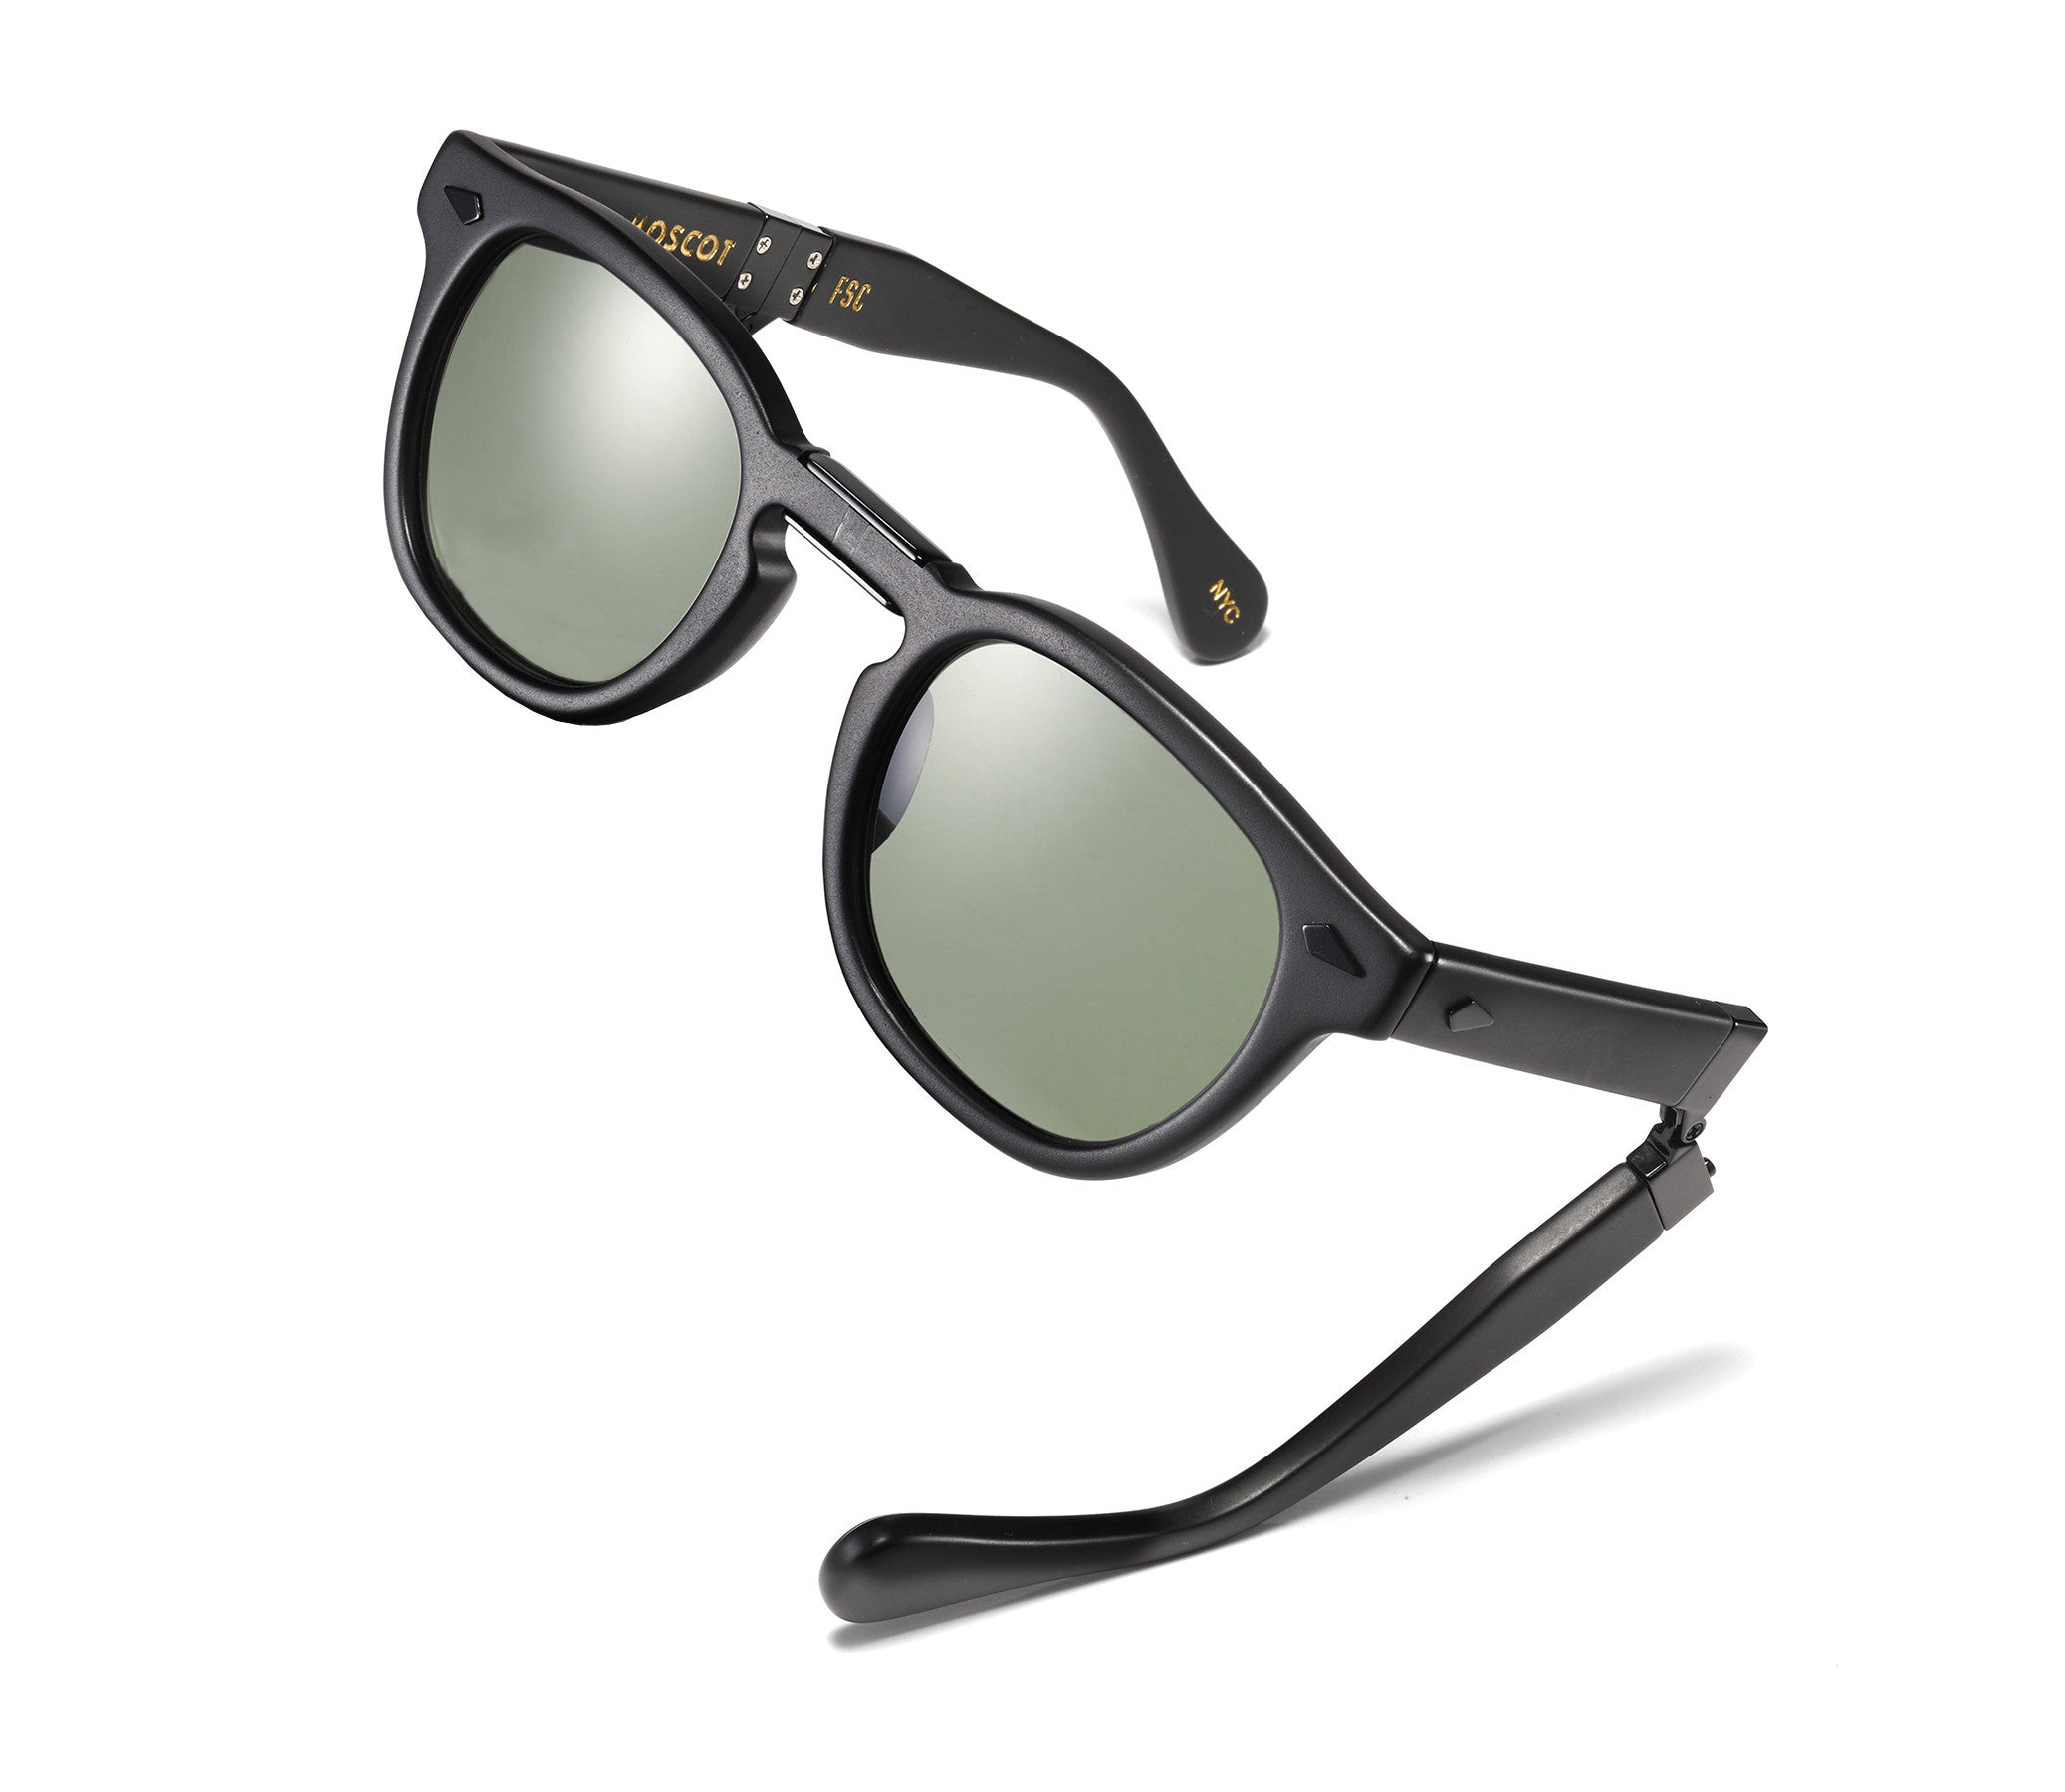 a0445d39a66 SPECIAL EDITION MOSCOT LEMTOSH FOLD - MATTE BLACK